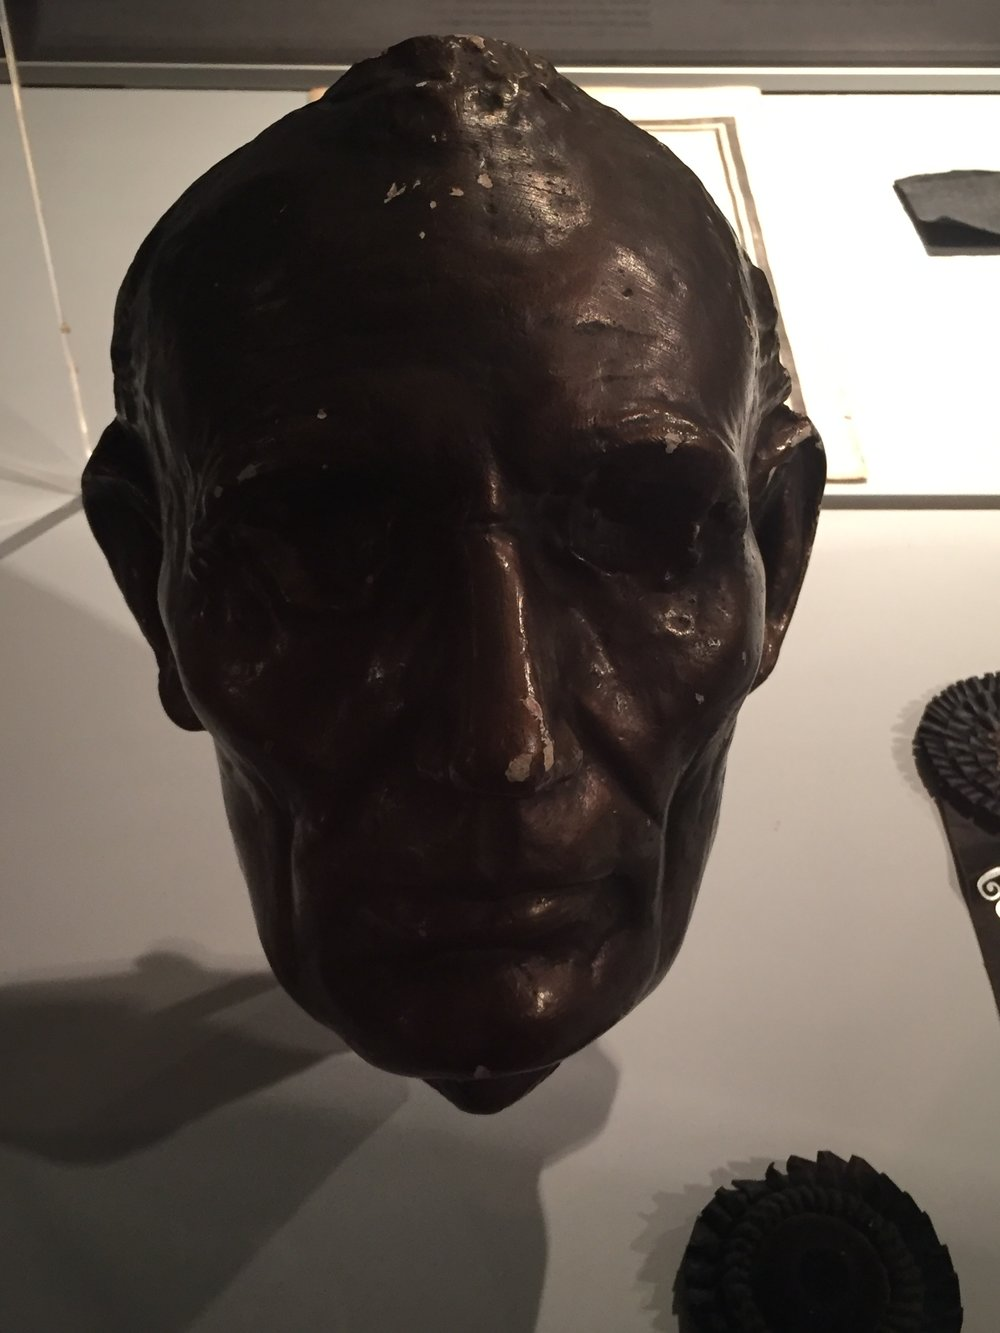 Lincoln Life Mask created in 1864-1865